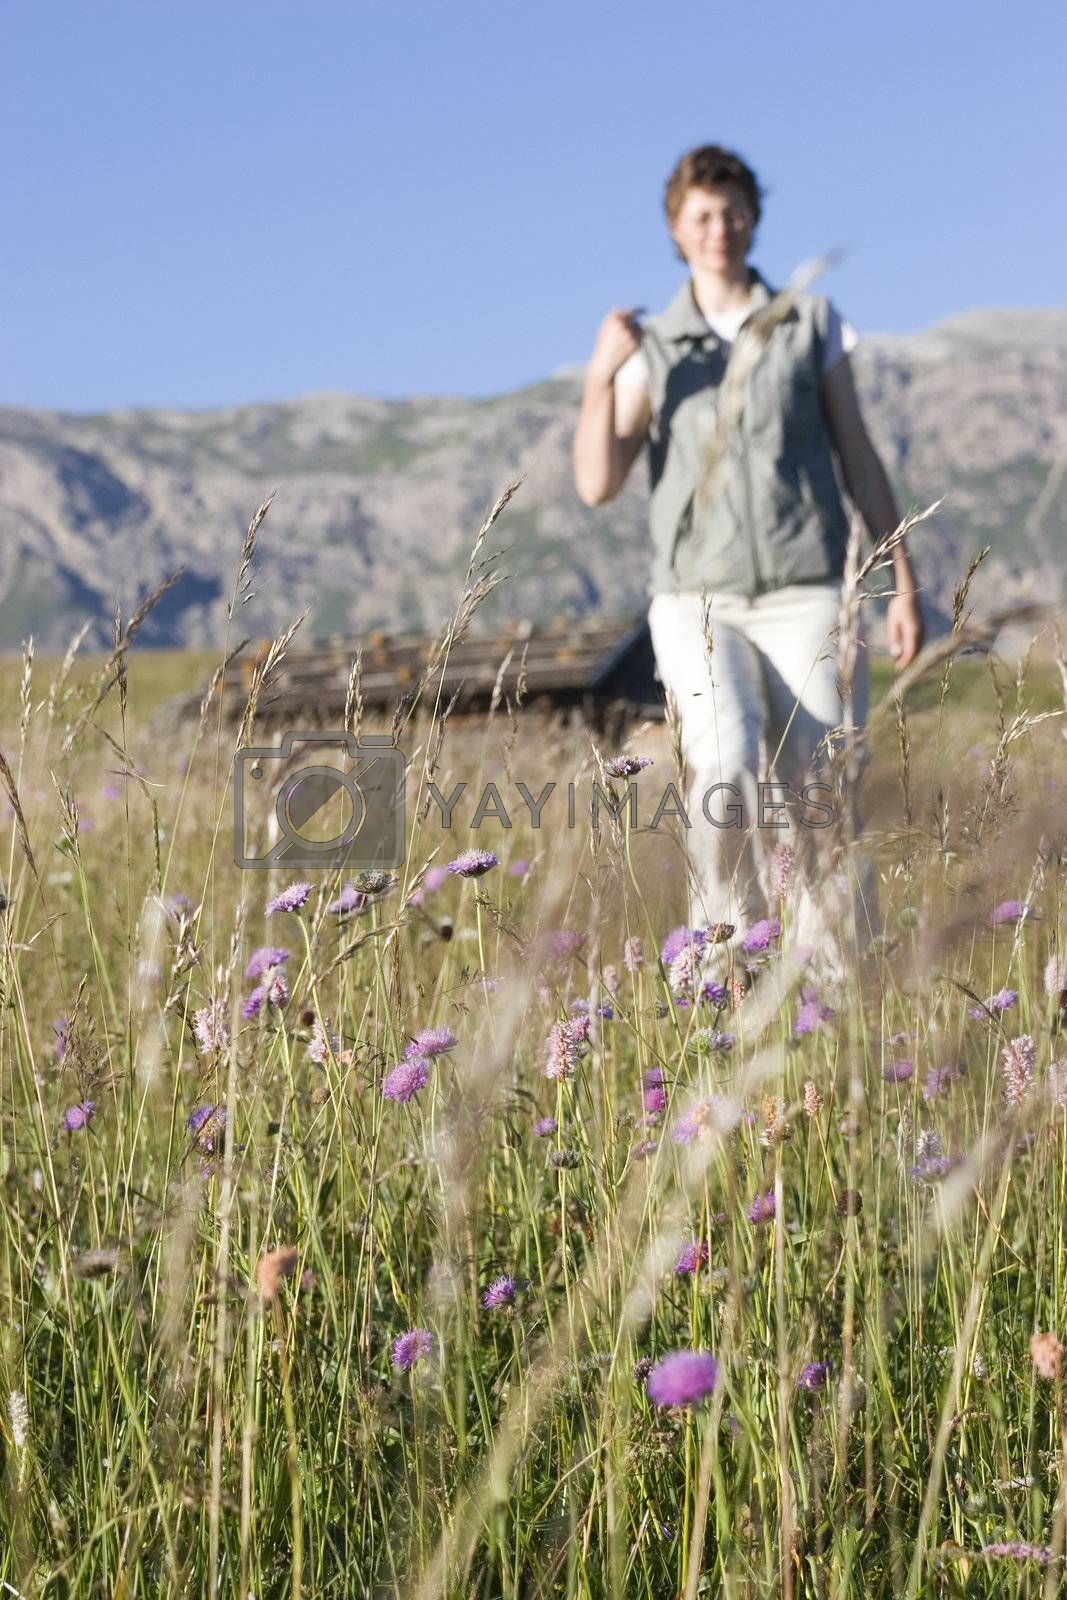 Hiking woman in a meadow in the mountains with a mountain shelter in the background - Seiser Alm - Dolomites